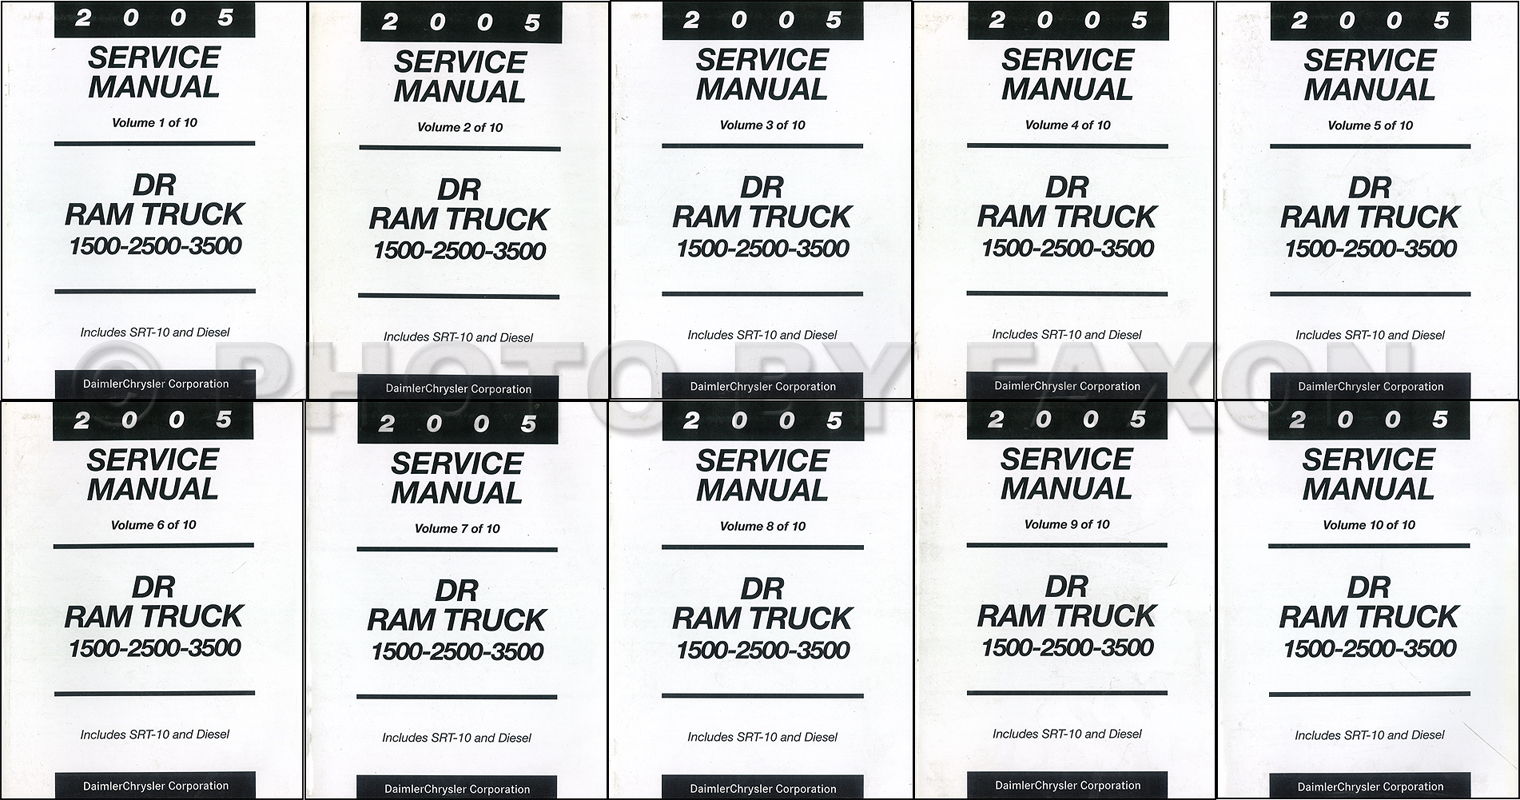 2005 Dodge Ram Truck Wiring Diagram Manual Original 1500 Repair Shop 10 Vol Set Factory Reprint 2500 3500